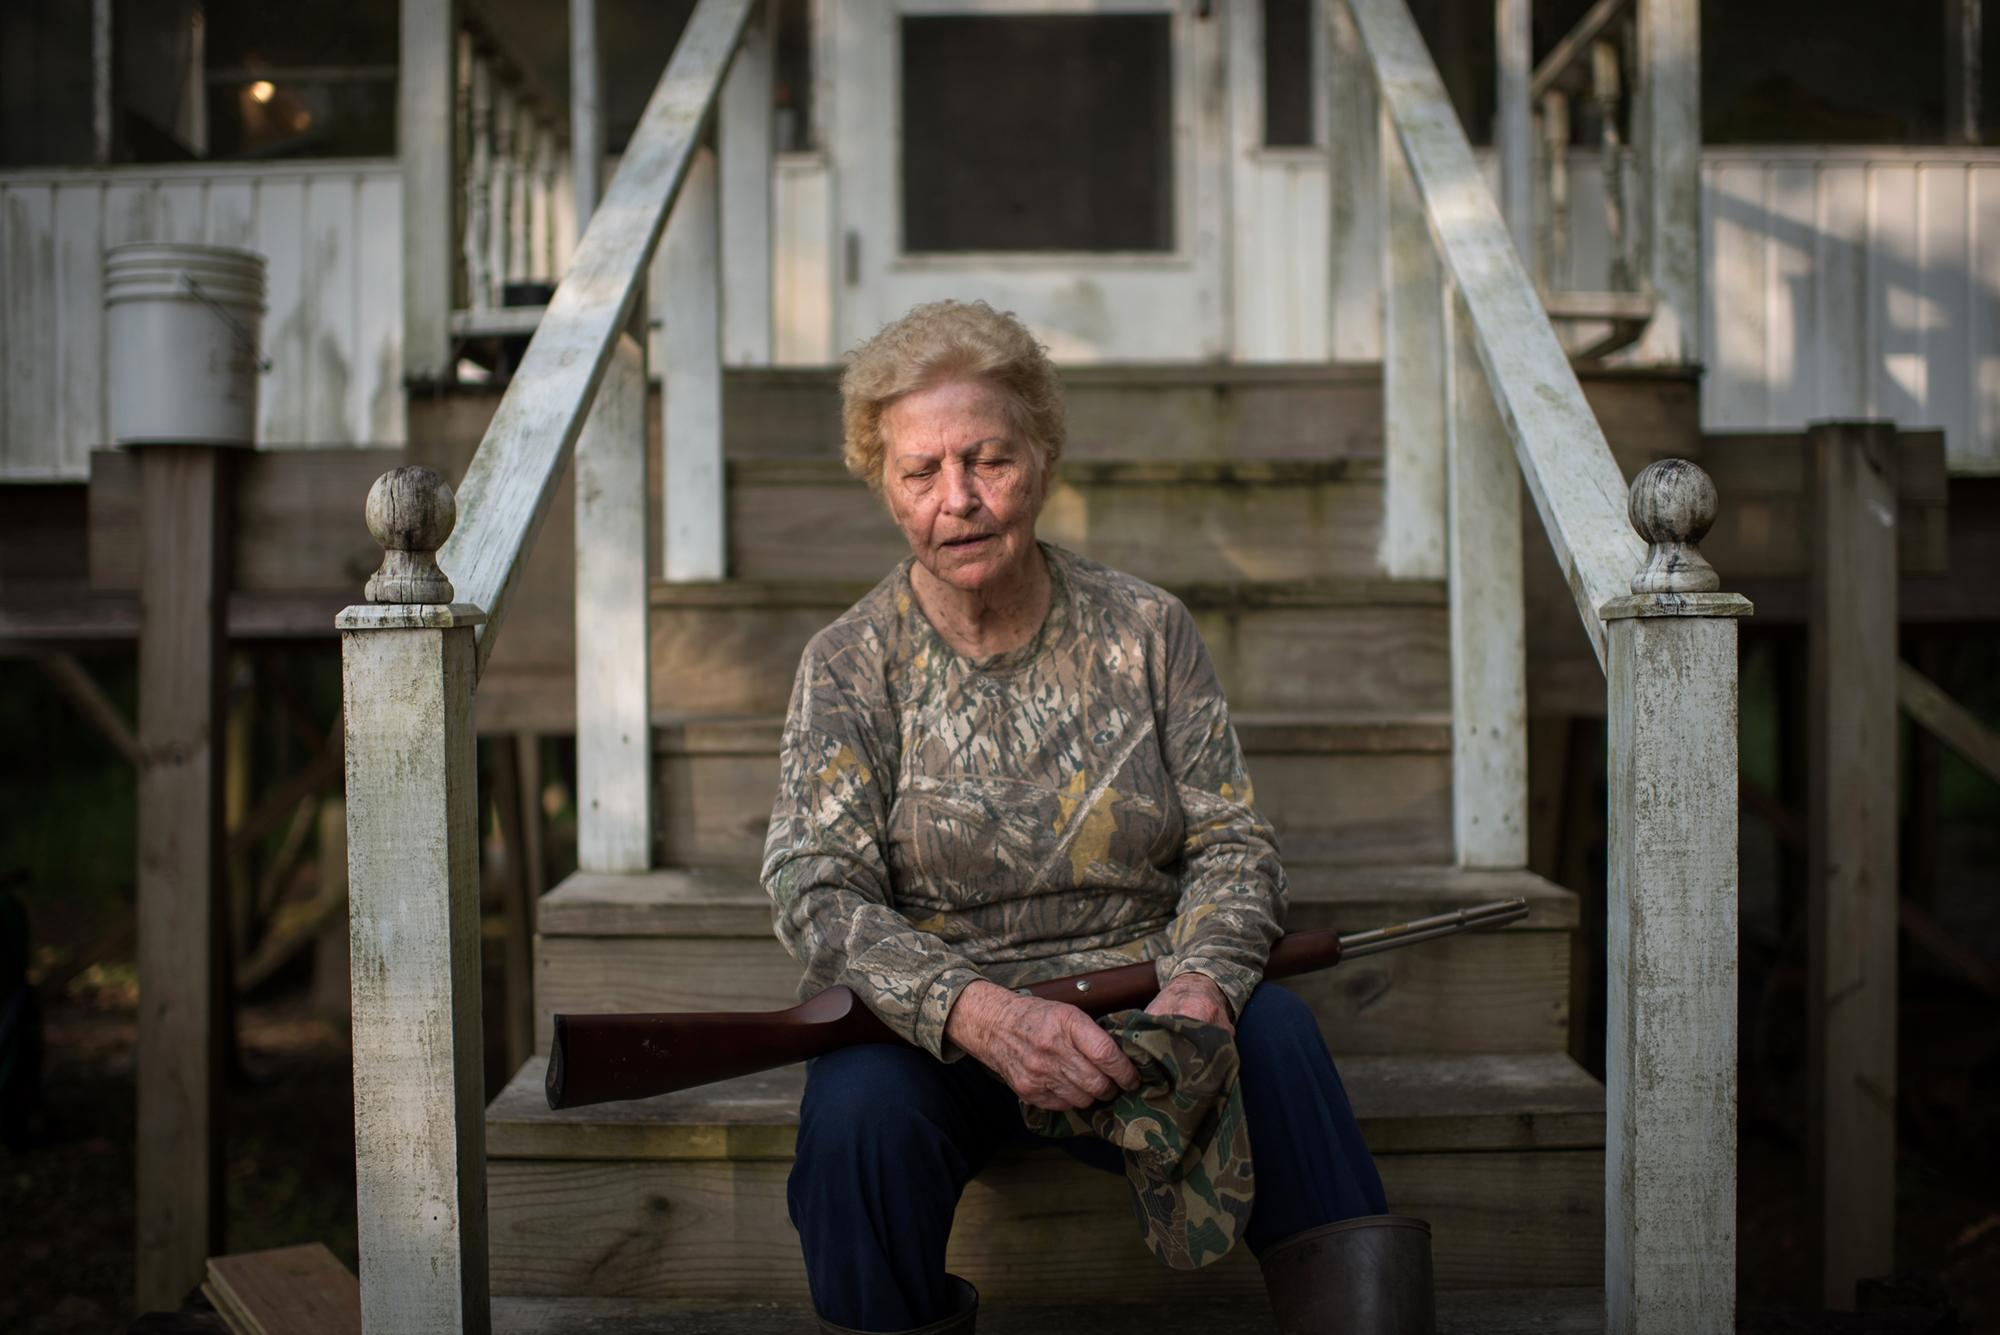 Squirrel hunter Annie Mendoza, 85, poses for a portrait outside her hunting cabin in Bayou Sorrel, Louisiana.